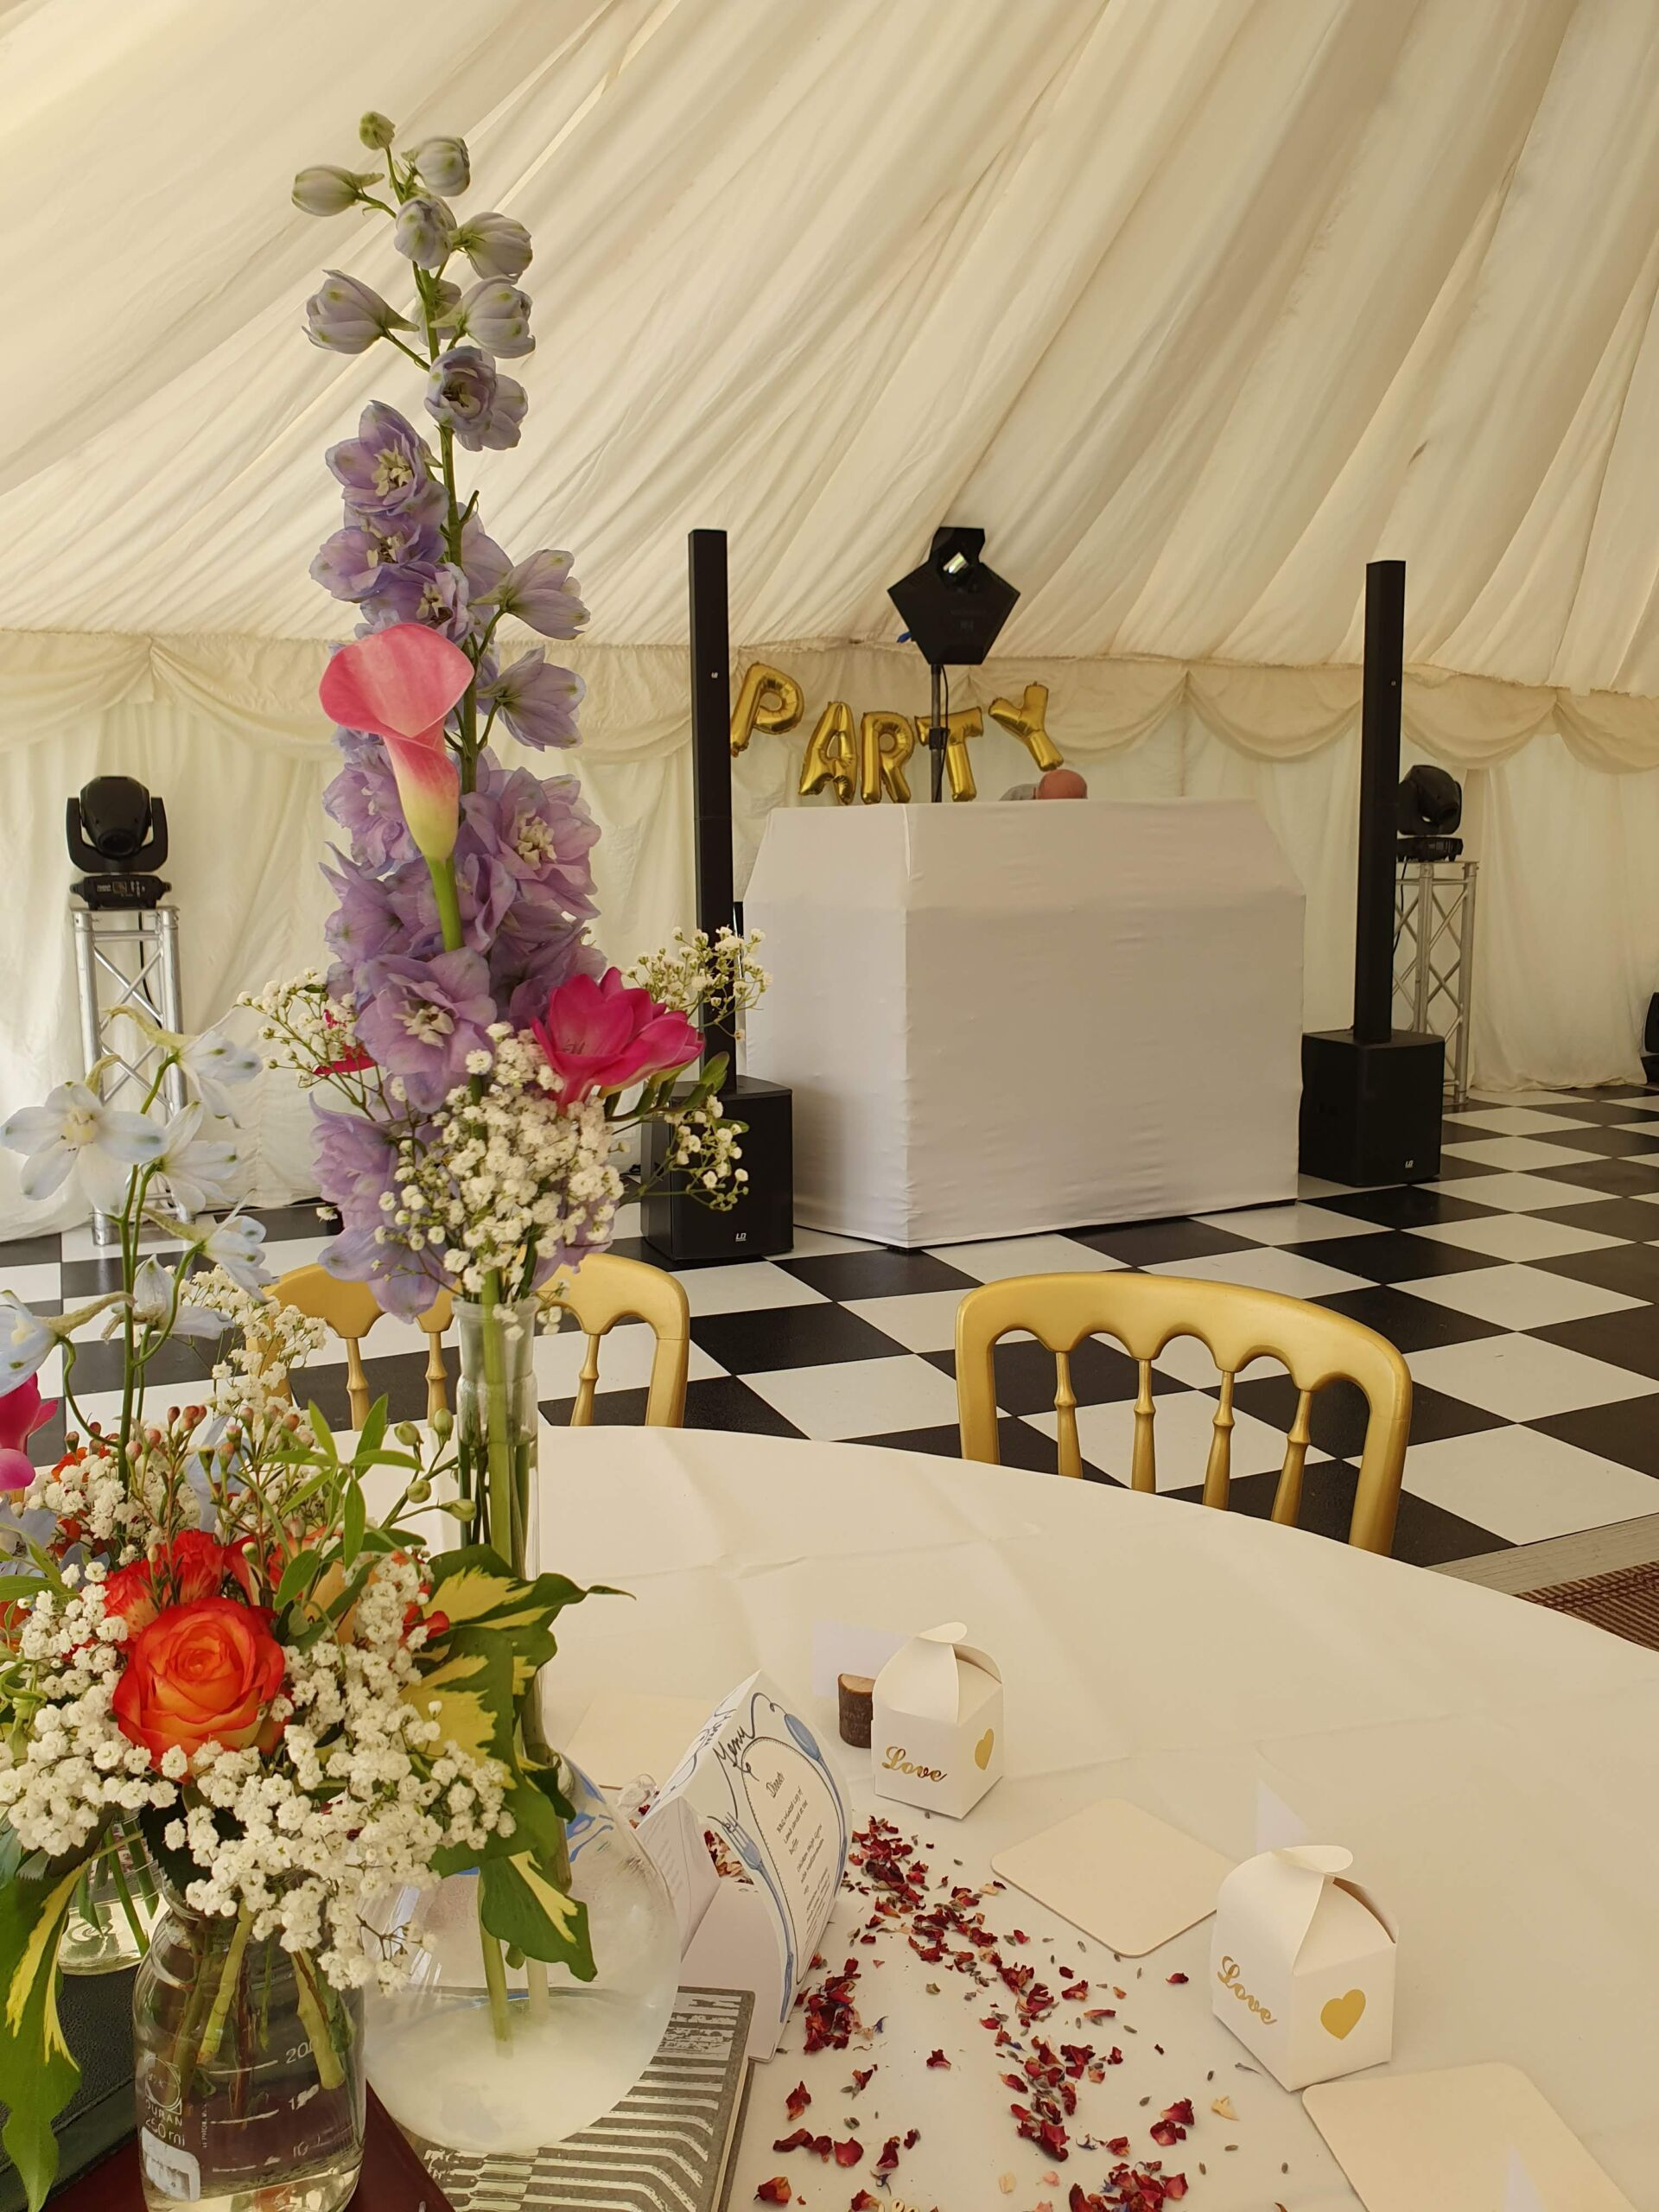 White mobile disco set up with gold Party balloons